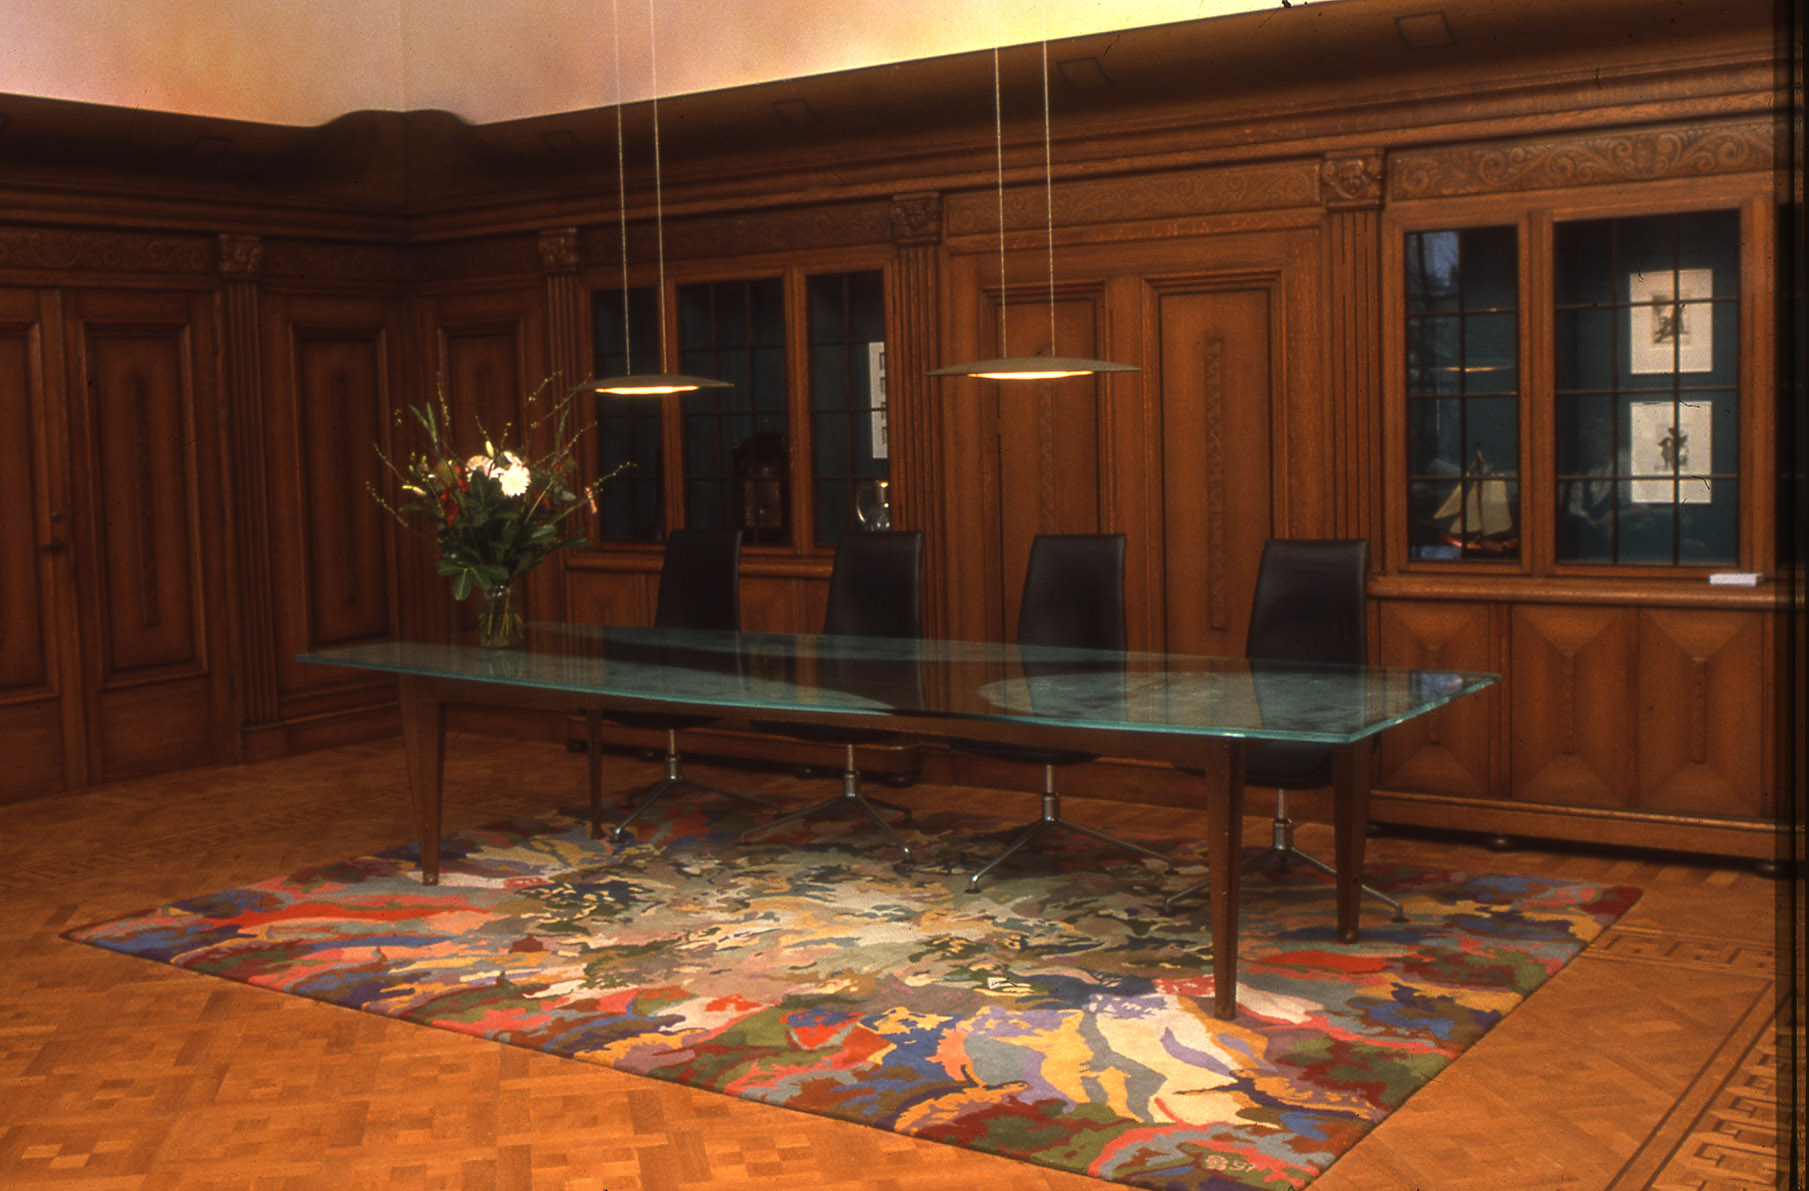 After Rubens, handtufted carpet for the boardroom, 350 x 500 cm